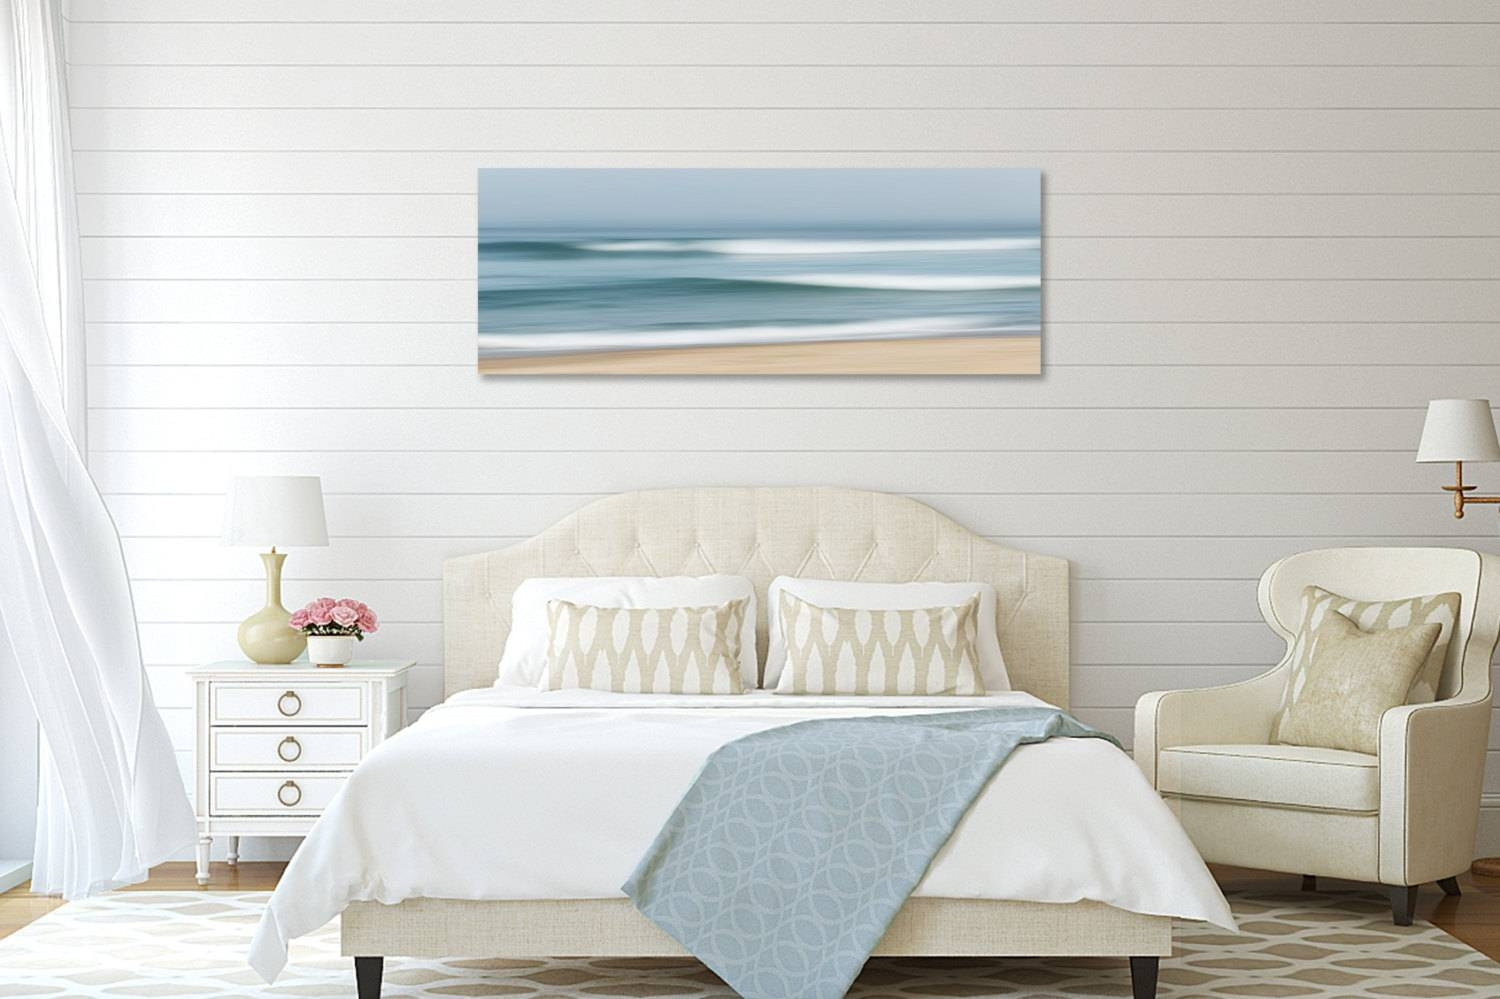 Coastal Wall Decor Large Abstract Beach Canvas Wall Art With Regard To 2017 Large Coastal Wall Art (View 11 of 20)